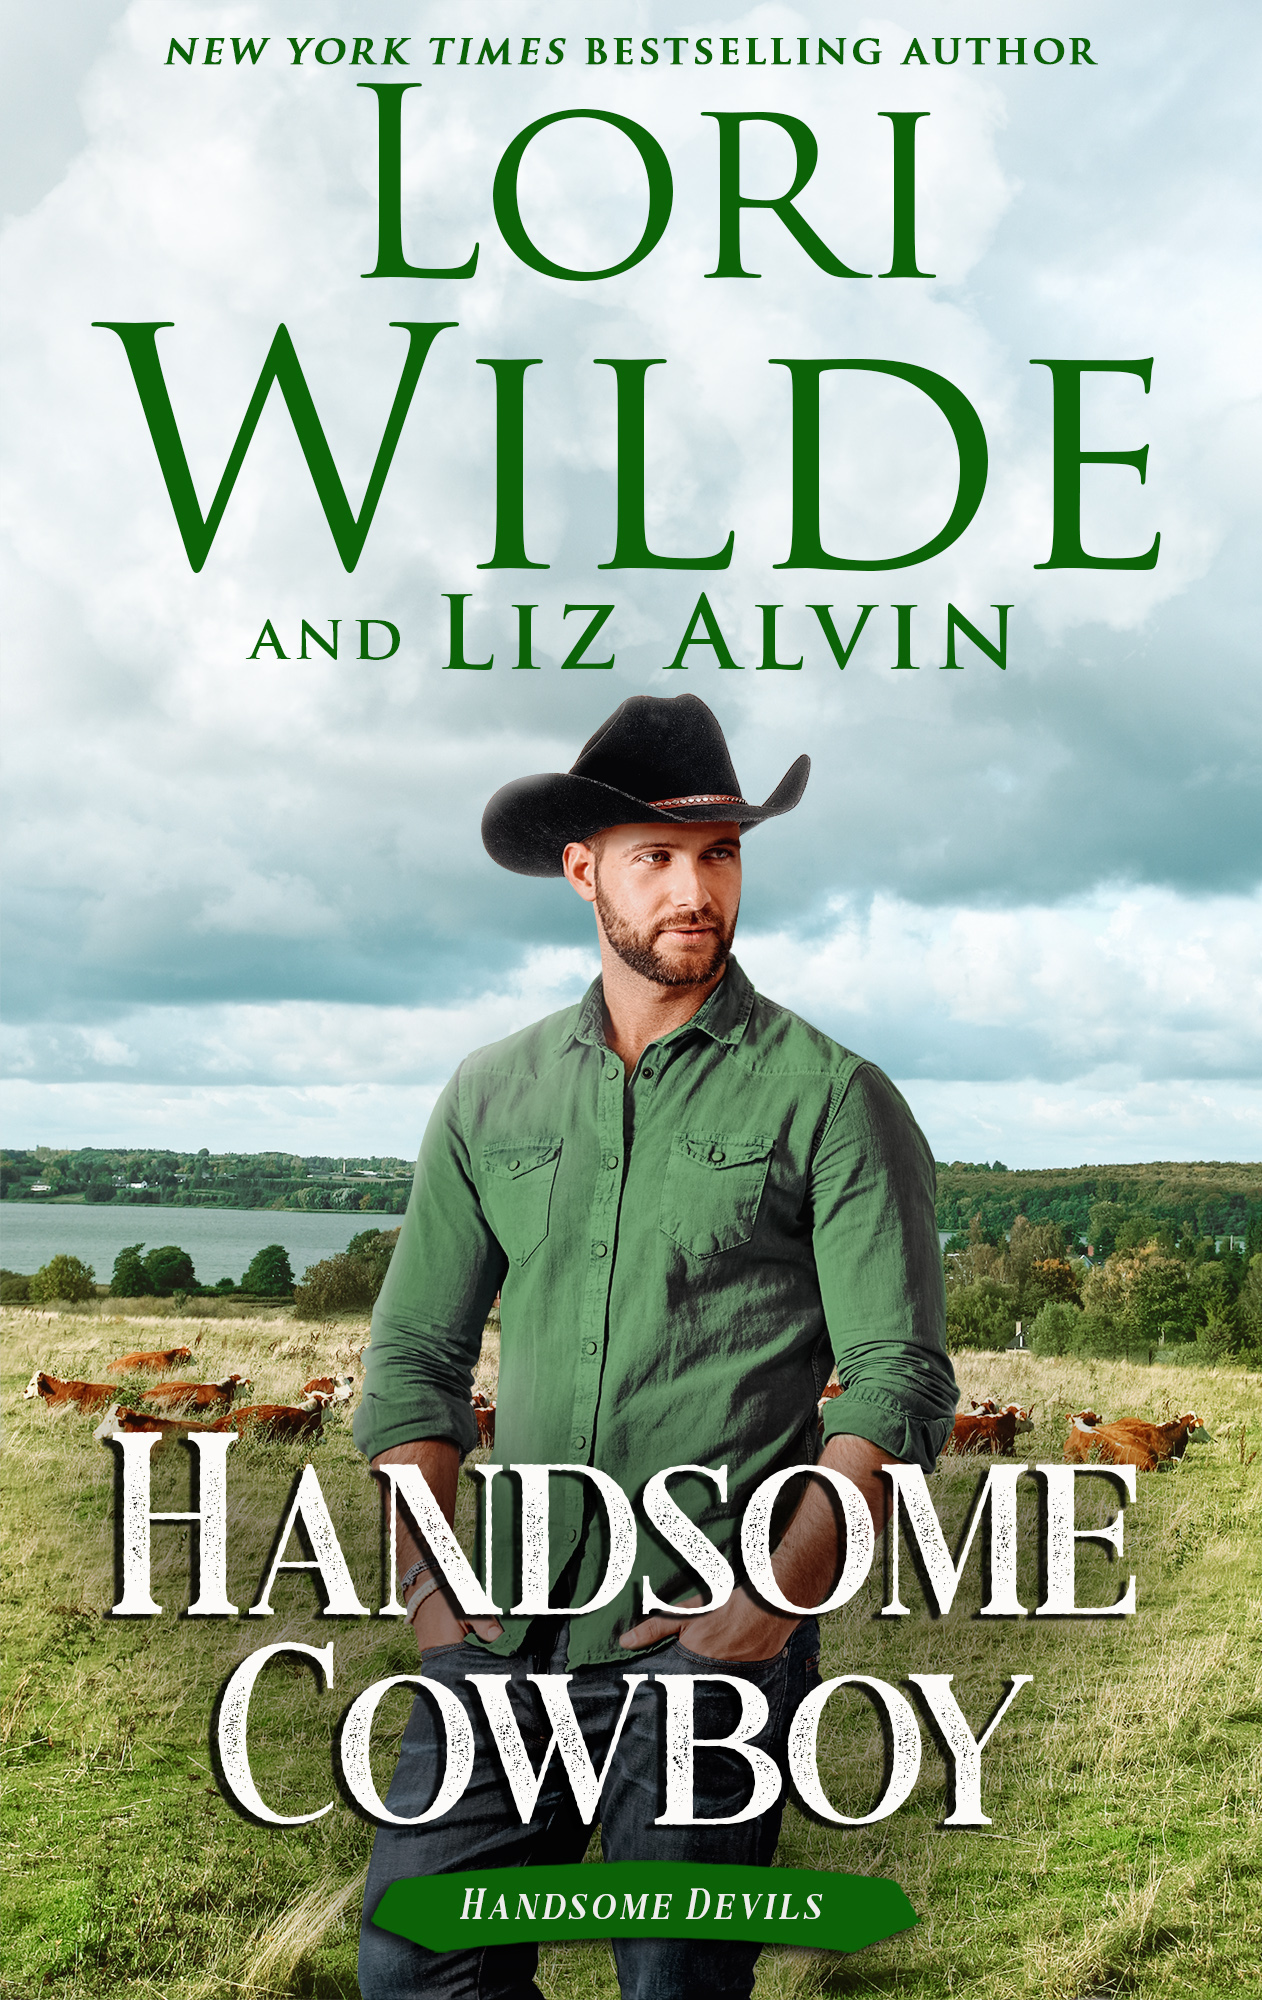 Handsome Cowboy final for Barnes and Noble